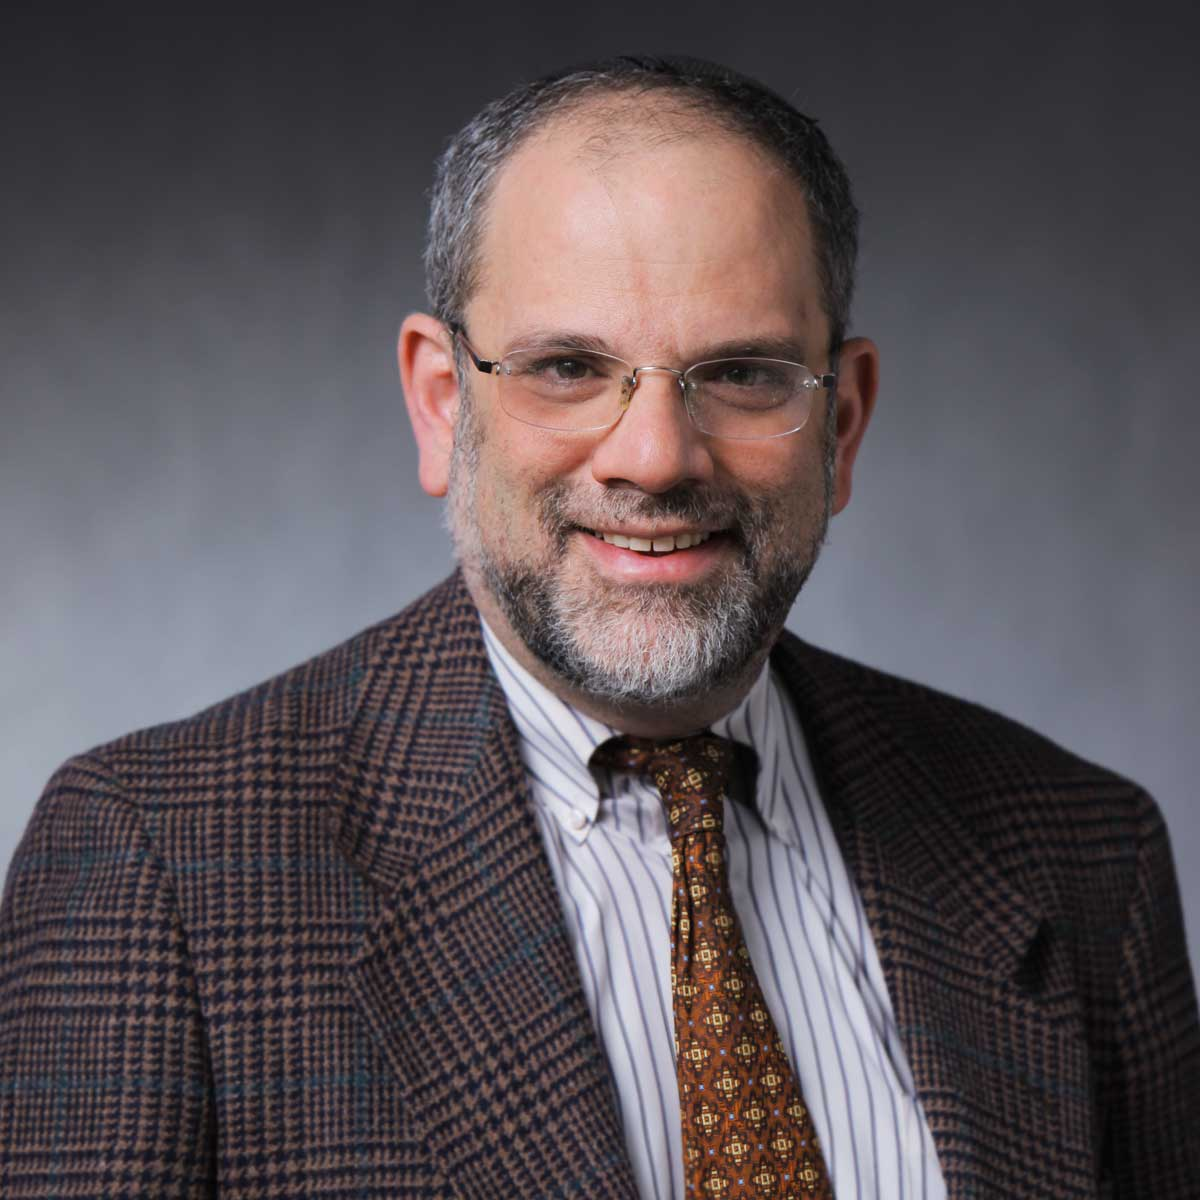 Adam Karp at [NYU Langone Medical Center]